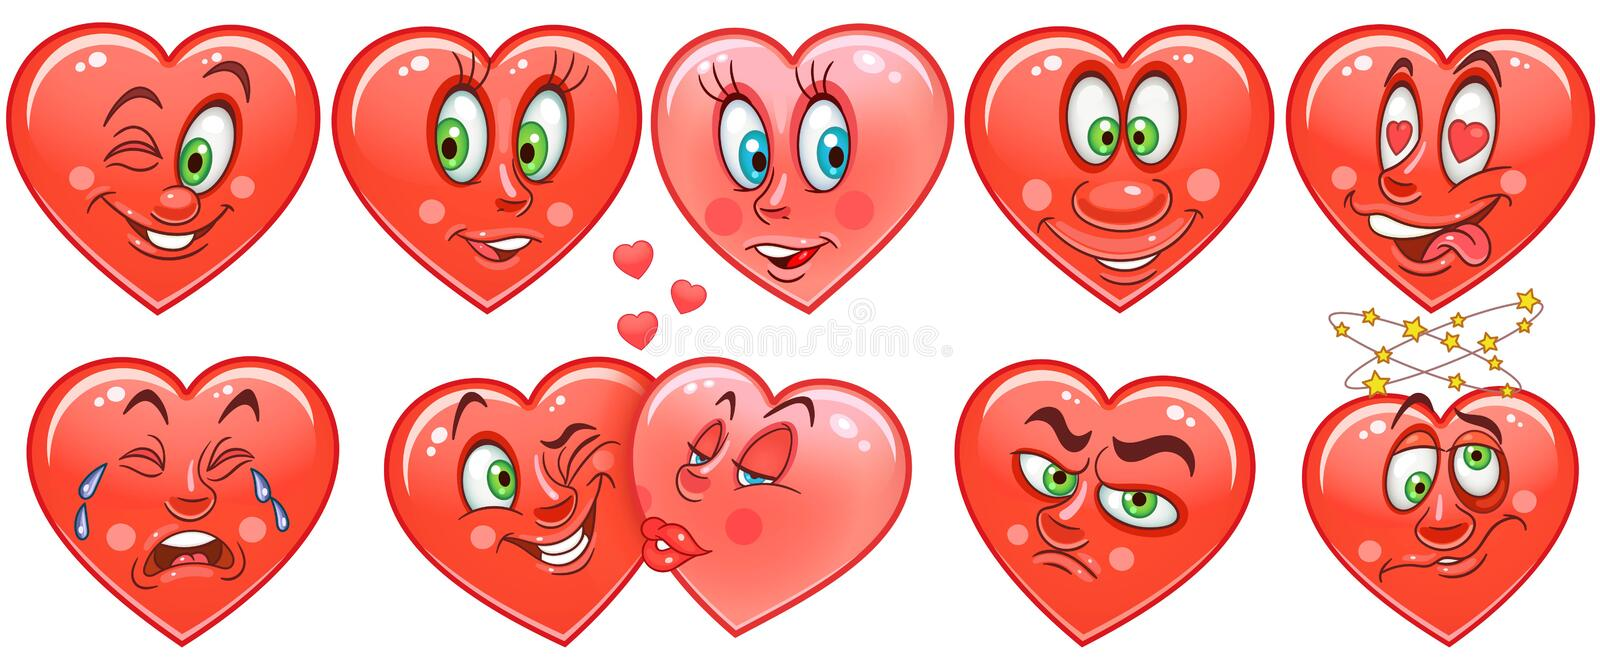 Heart collection. Emoticons. Smiley. Emoji. Love symbol stock image